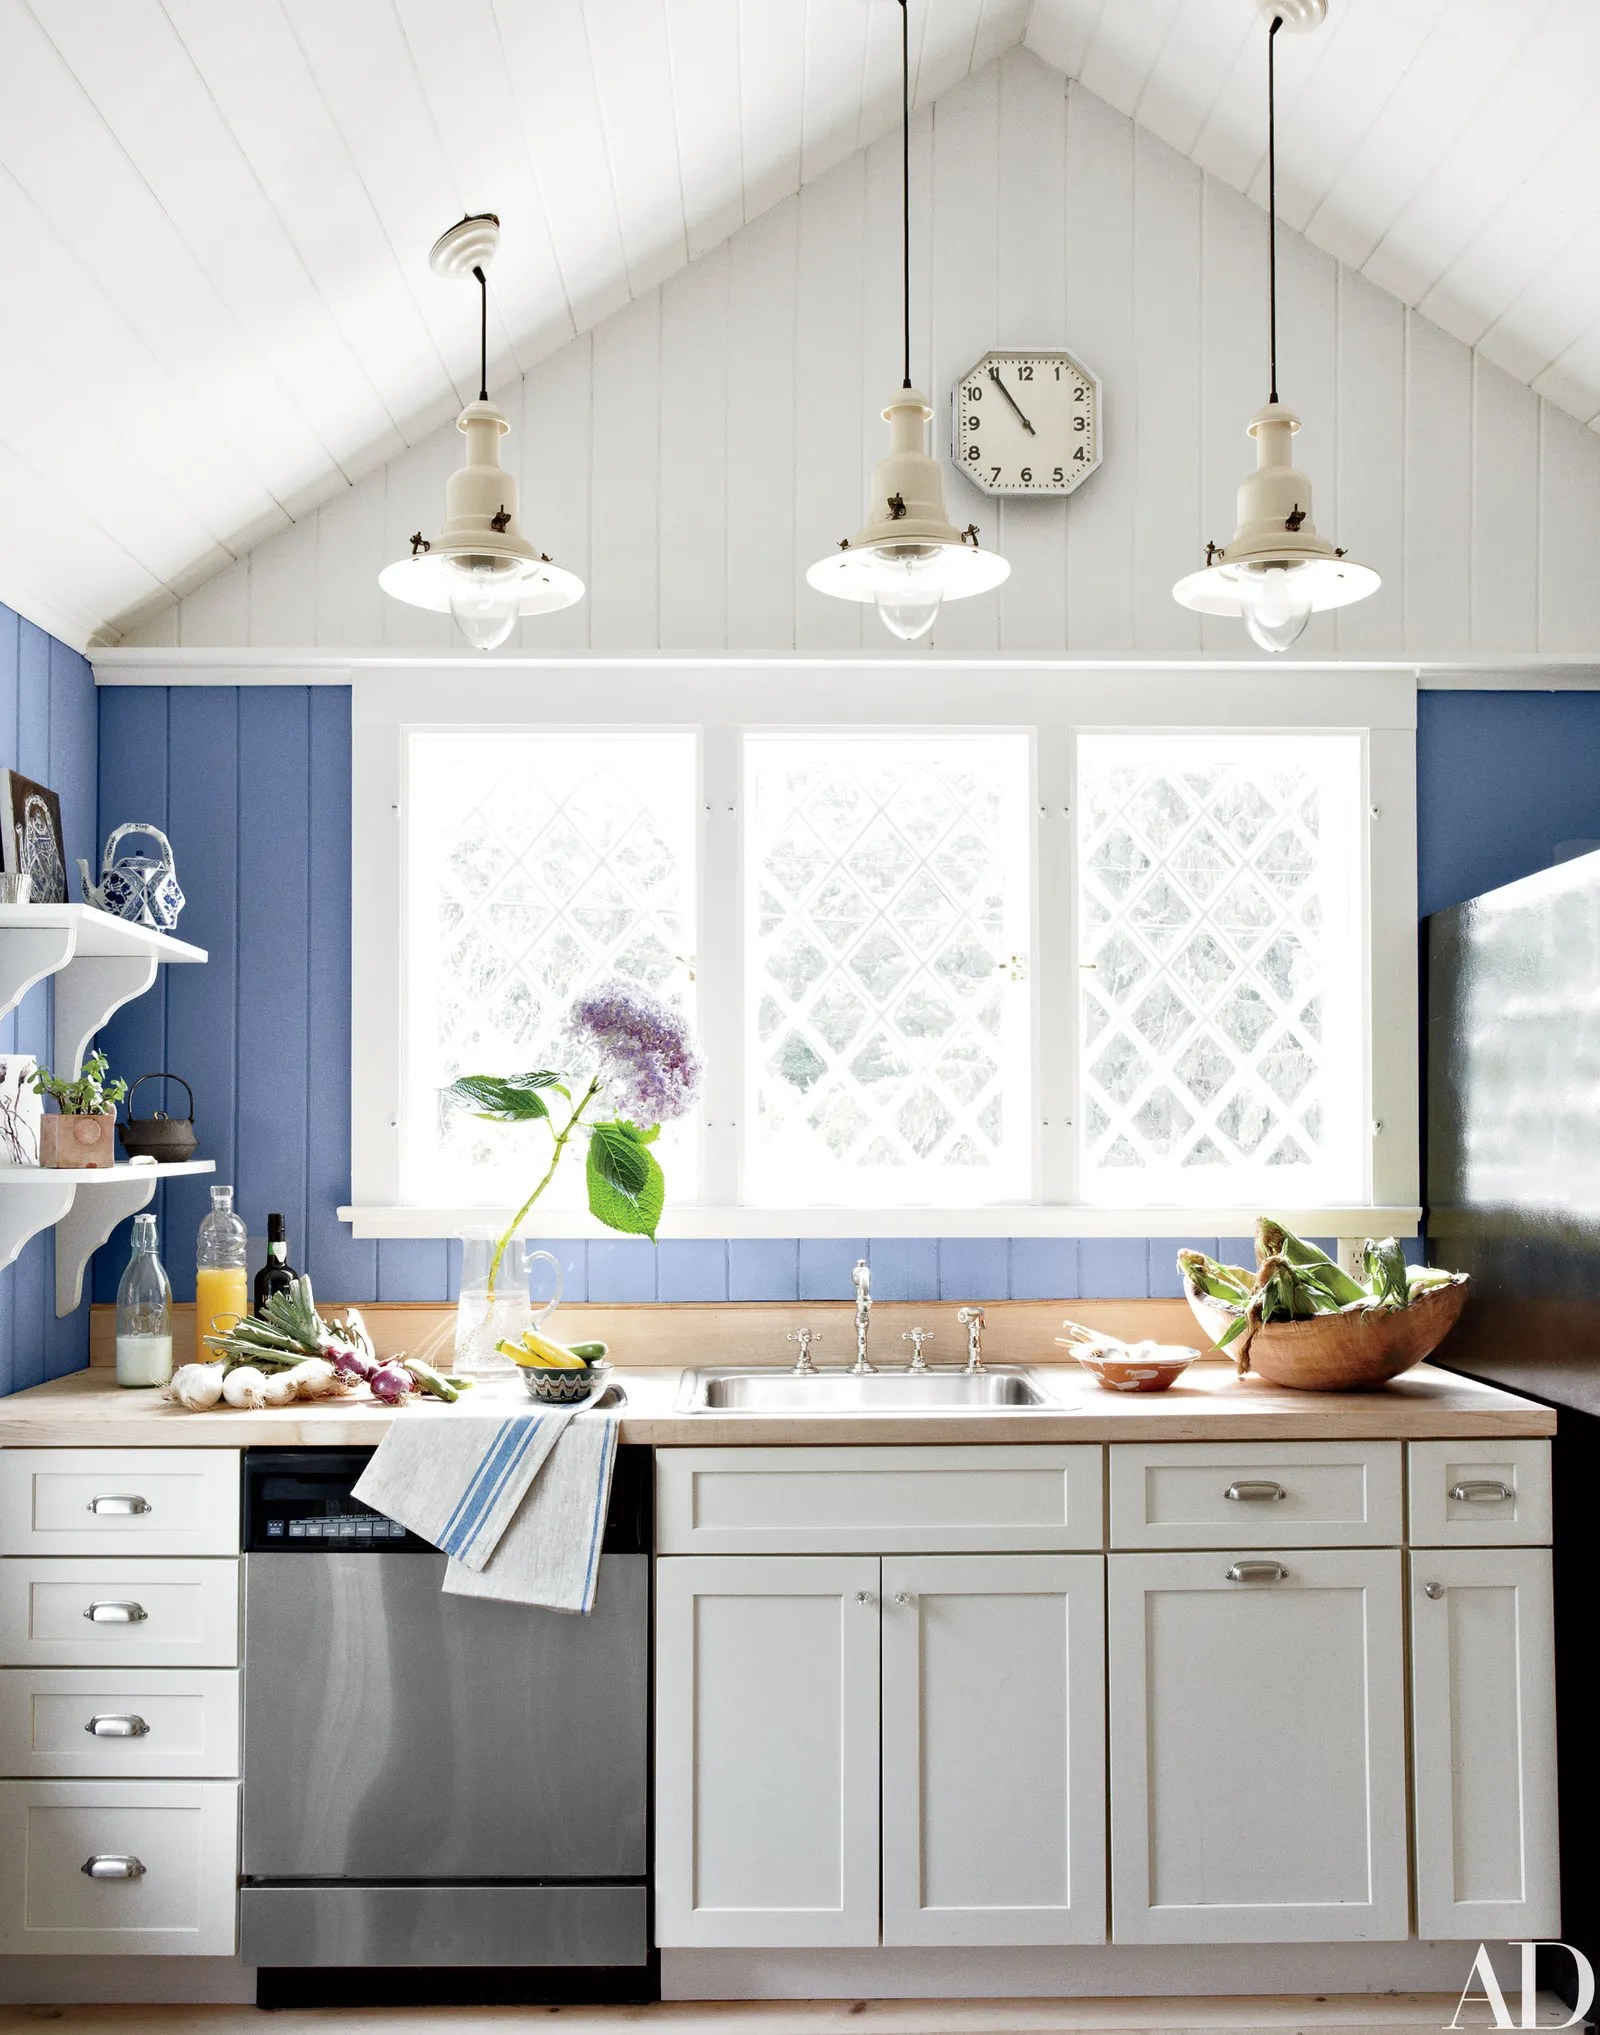 10 Kitchen Wall Decor Ideas Easy and Creative Style Tips  Architectural Digest